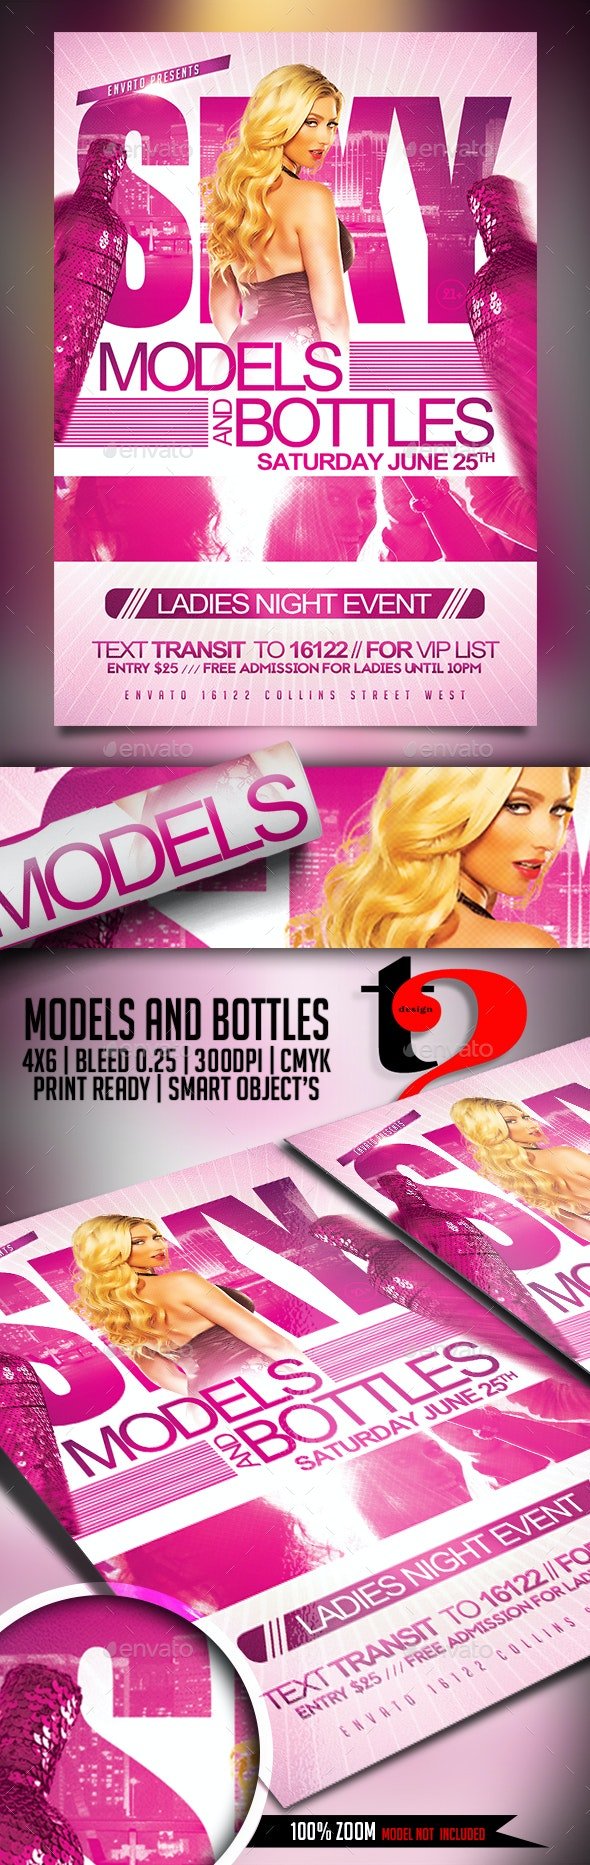 Models and Bottles Flyer Template - Clubs & Parties Events